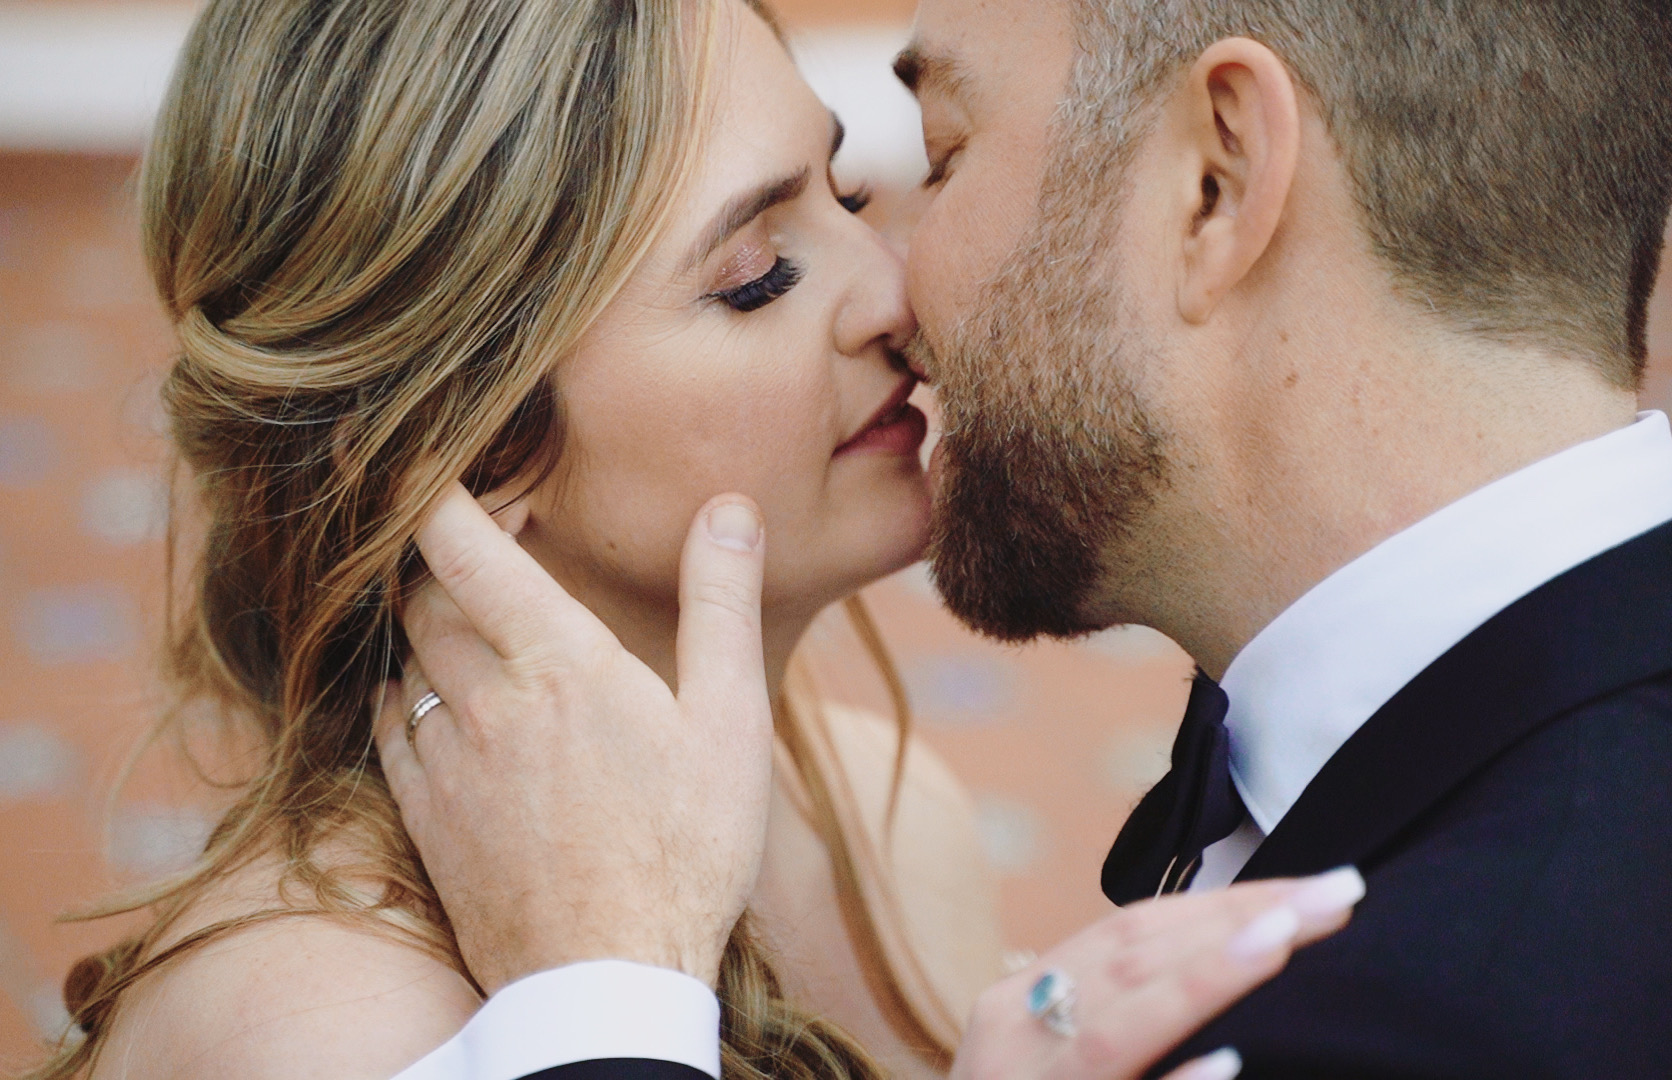 Erica + Chris | Lake Forest, California | Rancho Las Lomas